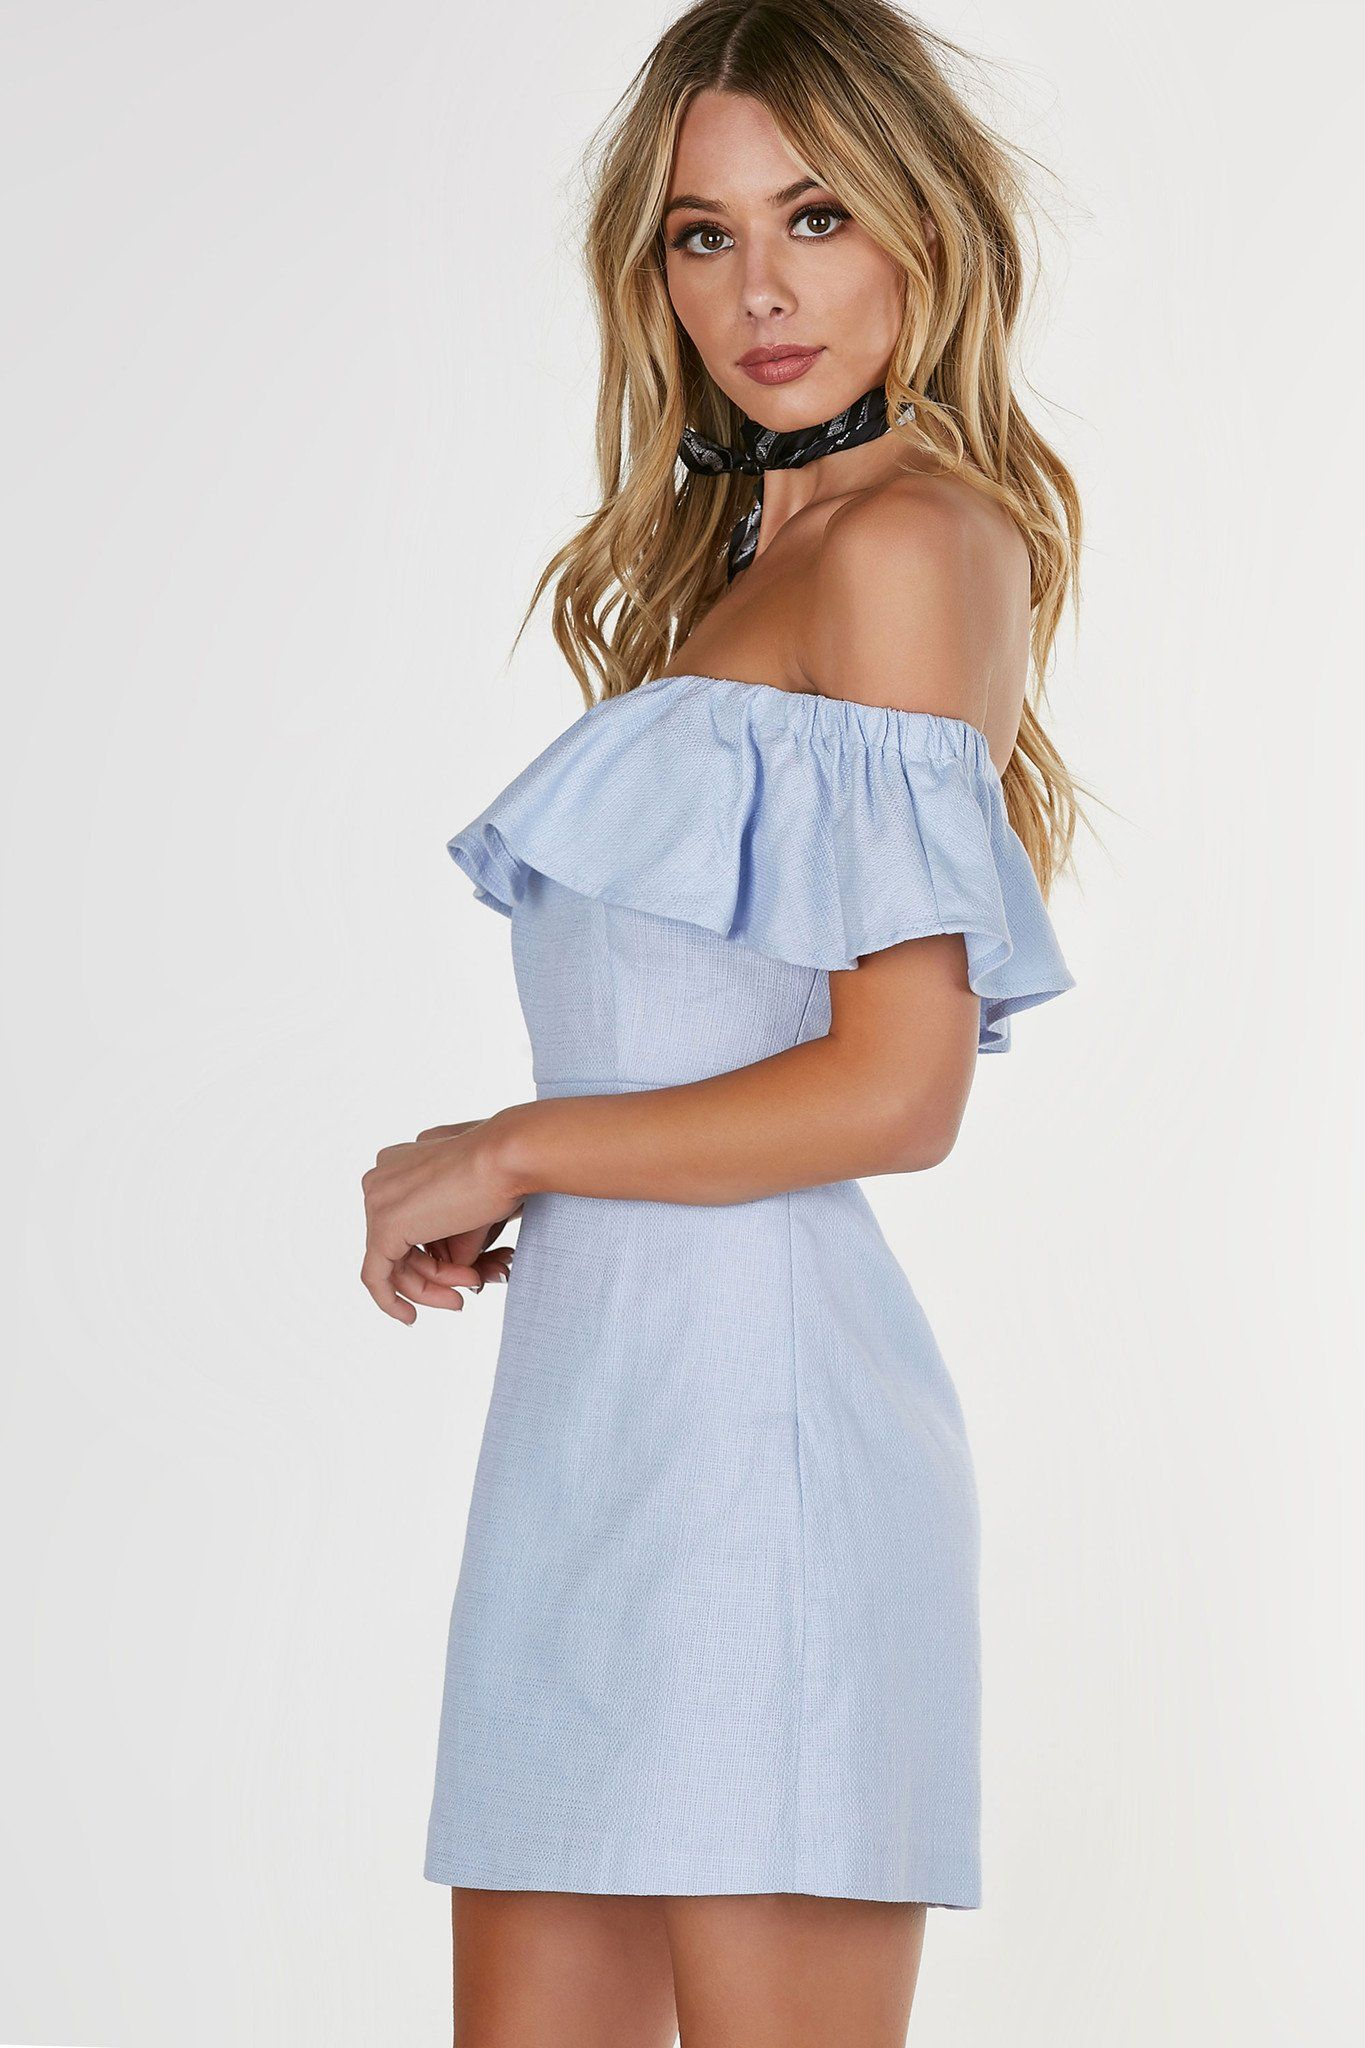 72f03fdf789c9 Structured tube style off shoulder dress with single ruffle tier at top for  added detail. A-line hem with hidden side zip closure.